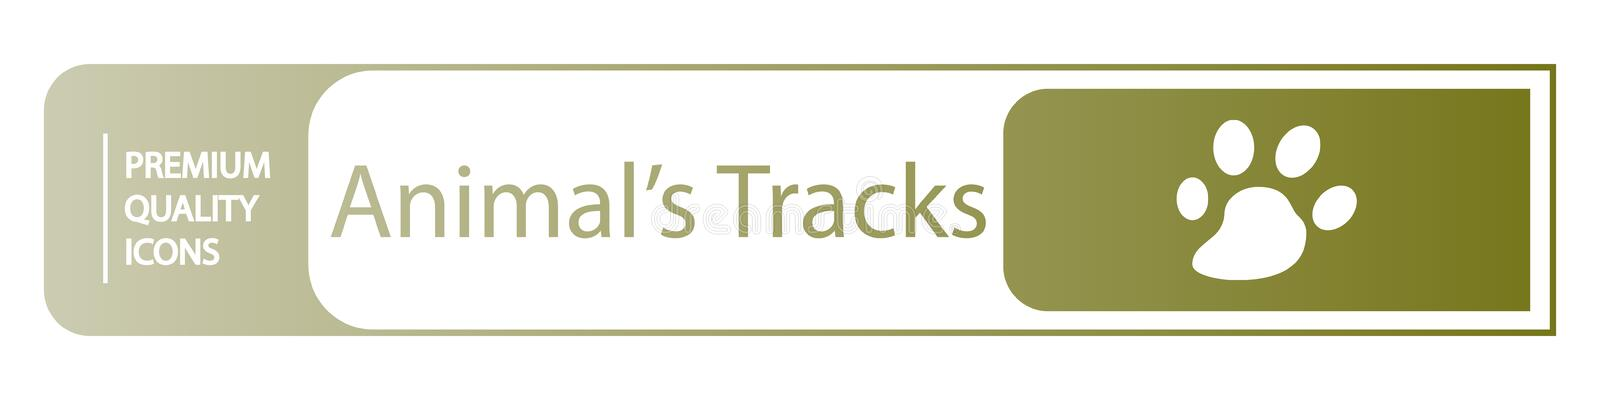 background animal tracks icons royalty free illustration